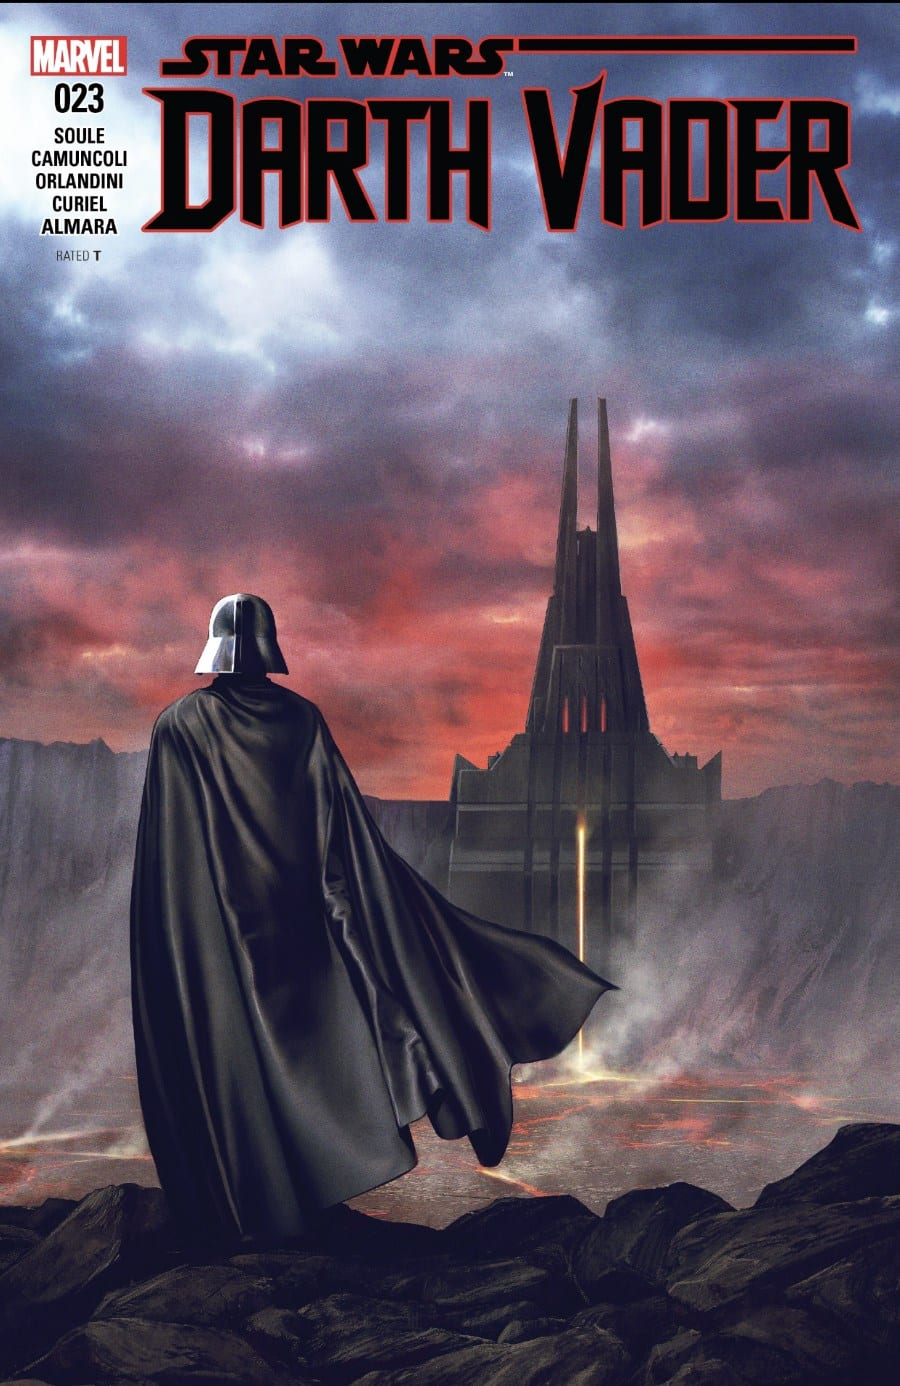 Darth Vader #23 Fortress Vader Part V - Cover